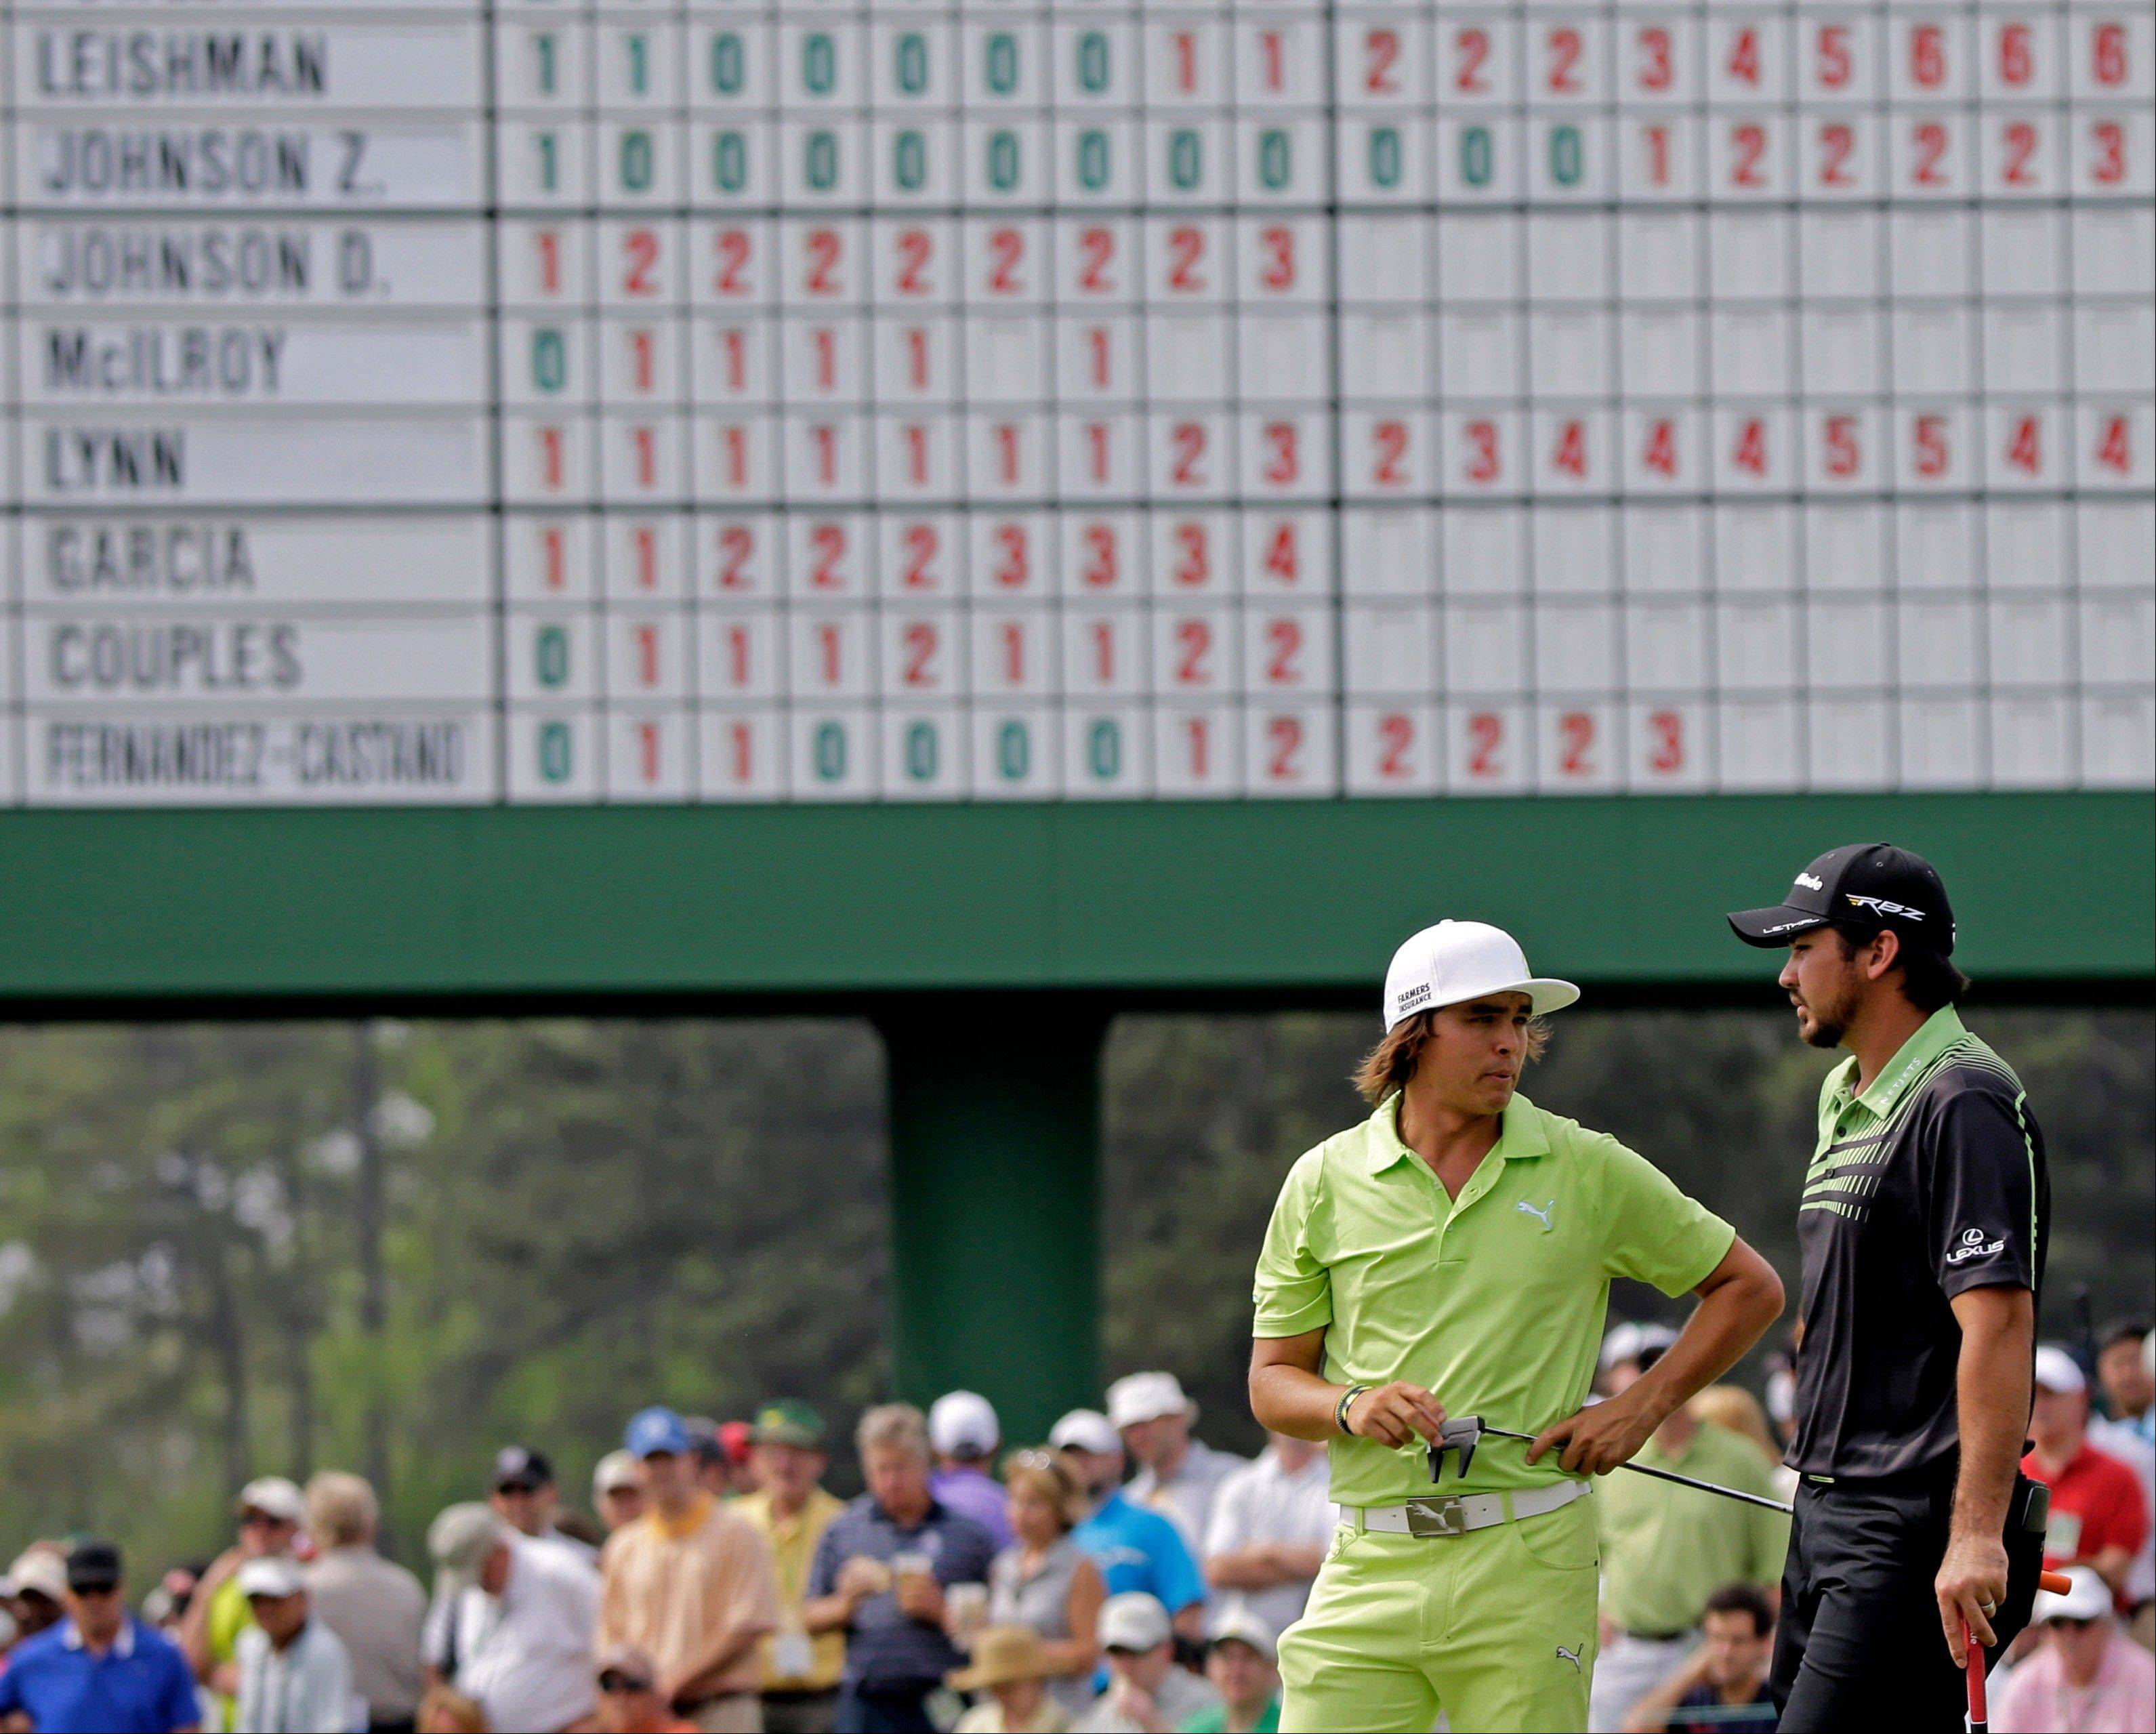 Rickie Fowler, left, chats with Jason Day, of Australia, on the 17th green during the first round of the Masters golf tournament Thursday, April 11, 2013, in Augusta, Ga.